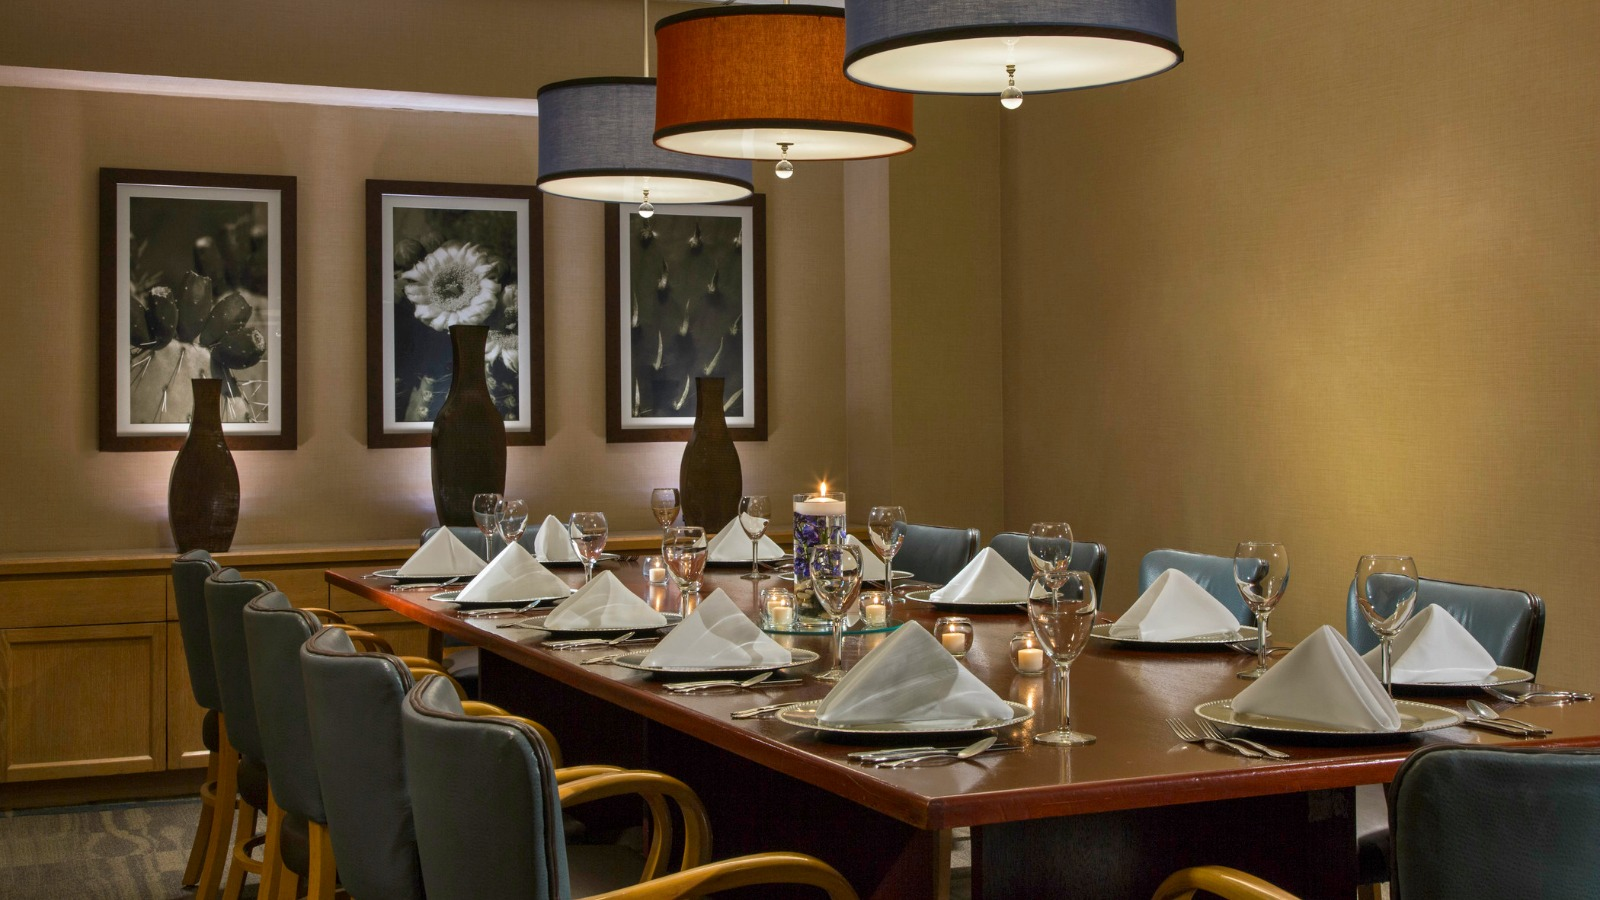 https://www.hotelsbyday.com/_data/default-hotel_image/0/2640/cimarron-private-dining.jpg